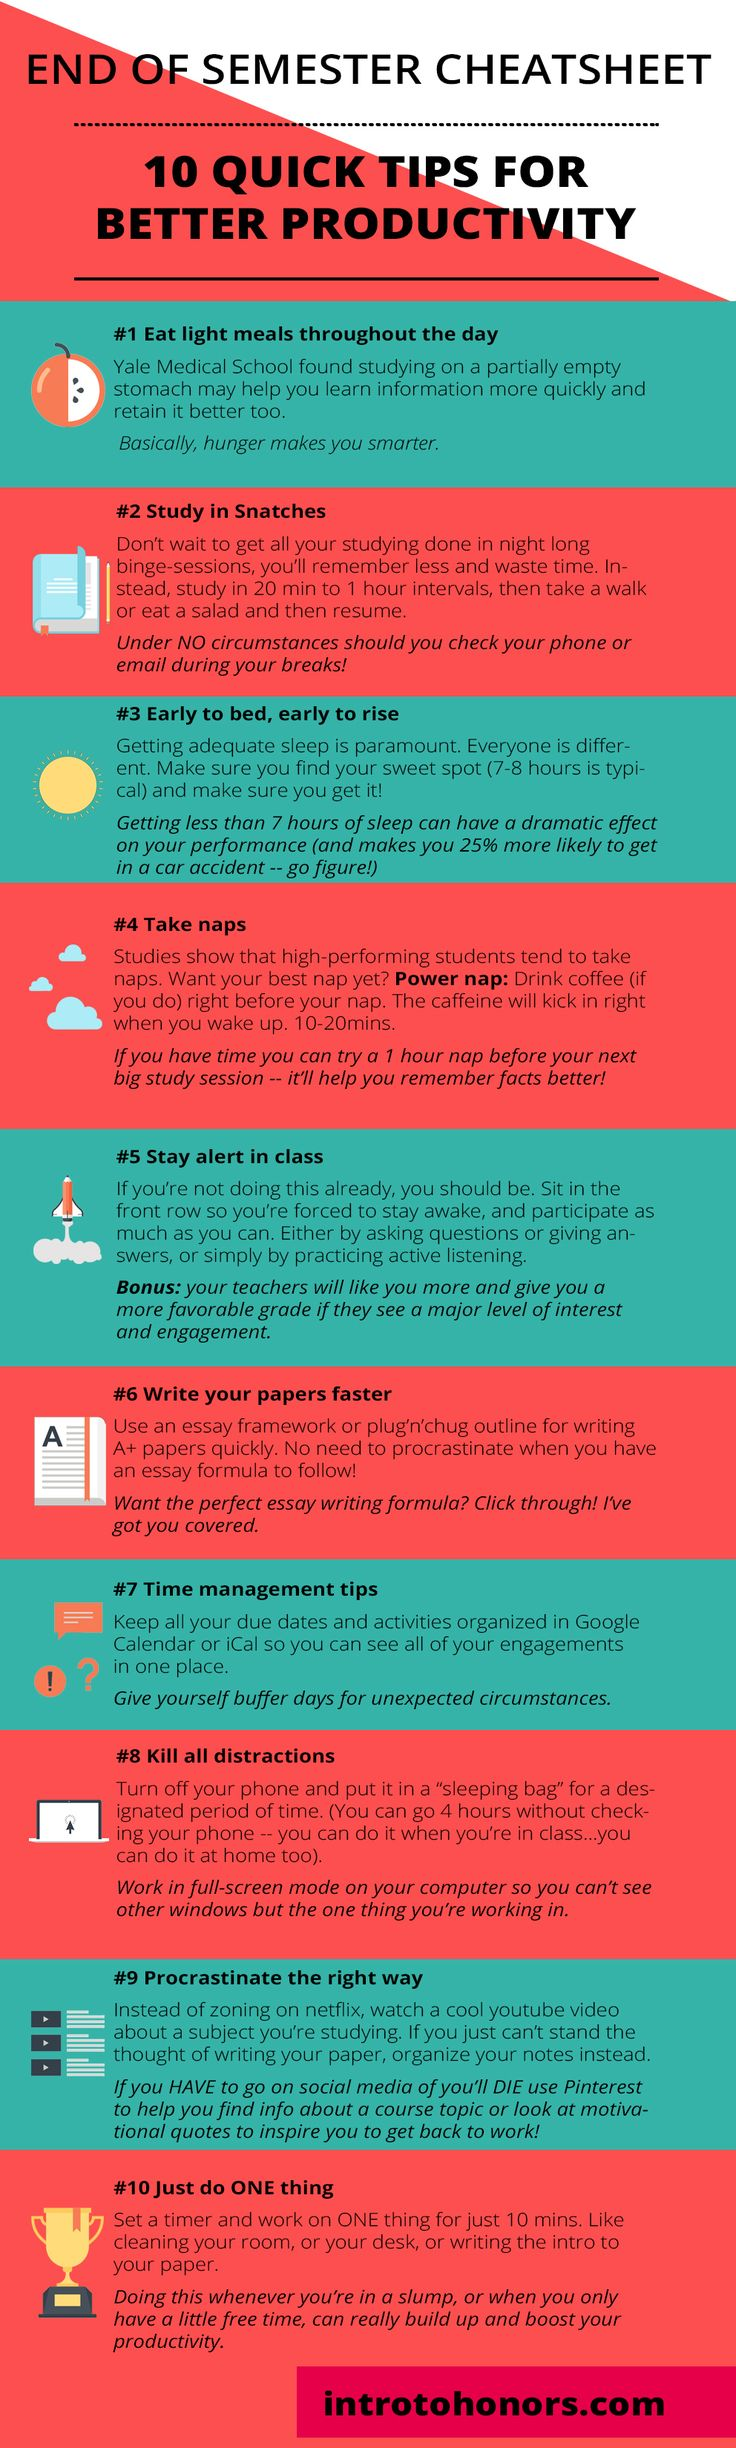 Best Tips To Boost Your Productivity In College   Perfect For Finals Week.